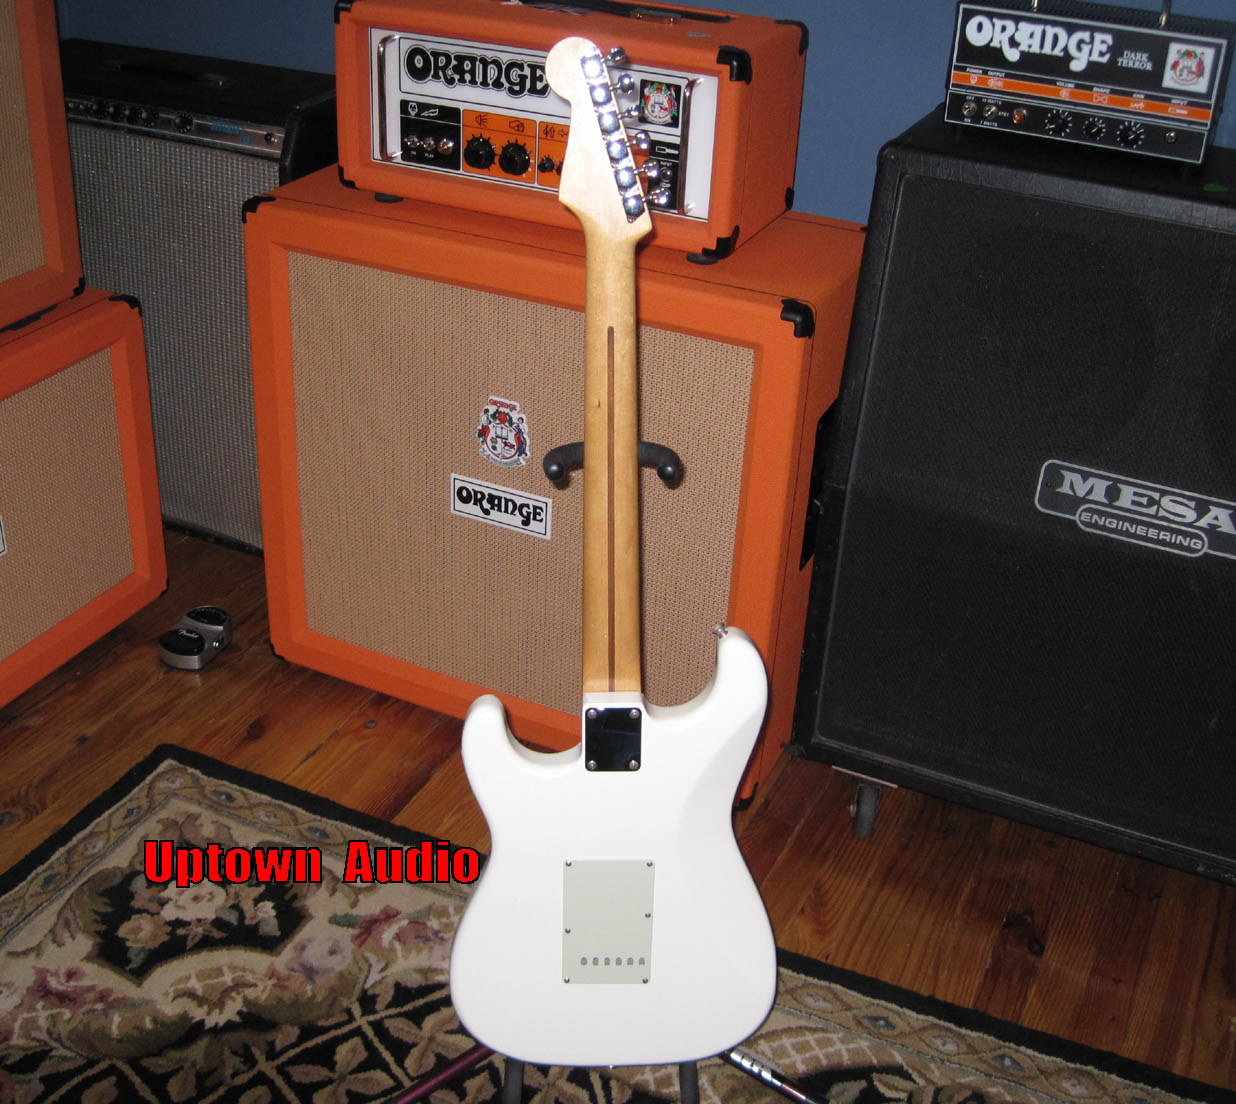 used guitars, amps on hss guitar wiring harness, custom guitar wiring harness, one pickup guitar wiring harness, electric guitar wiring harness, seymour guitar wiring harness, bass guitar wiring harness,